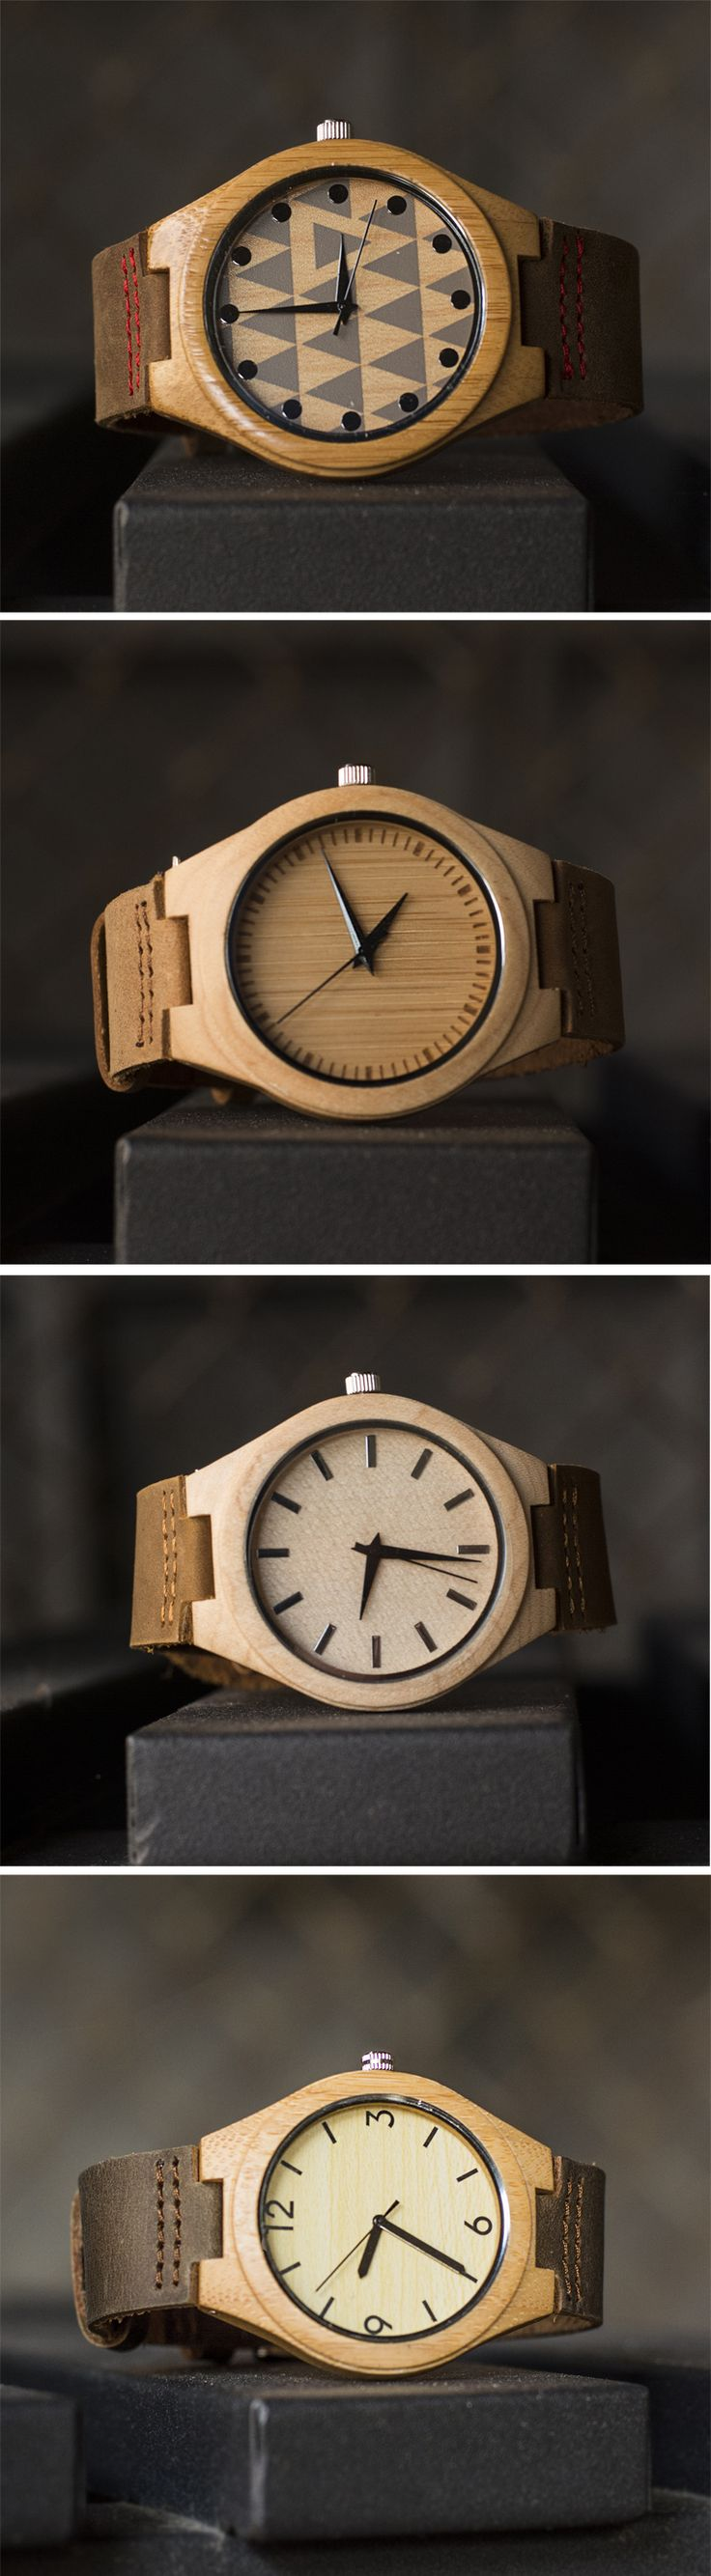 UD Wood Face Bamboo Wooden Watch with Genuine Leather Strap Quartz Analog Casual Wooden Wrist Watches, Gift for Her and Him